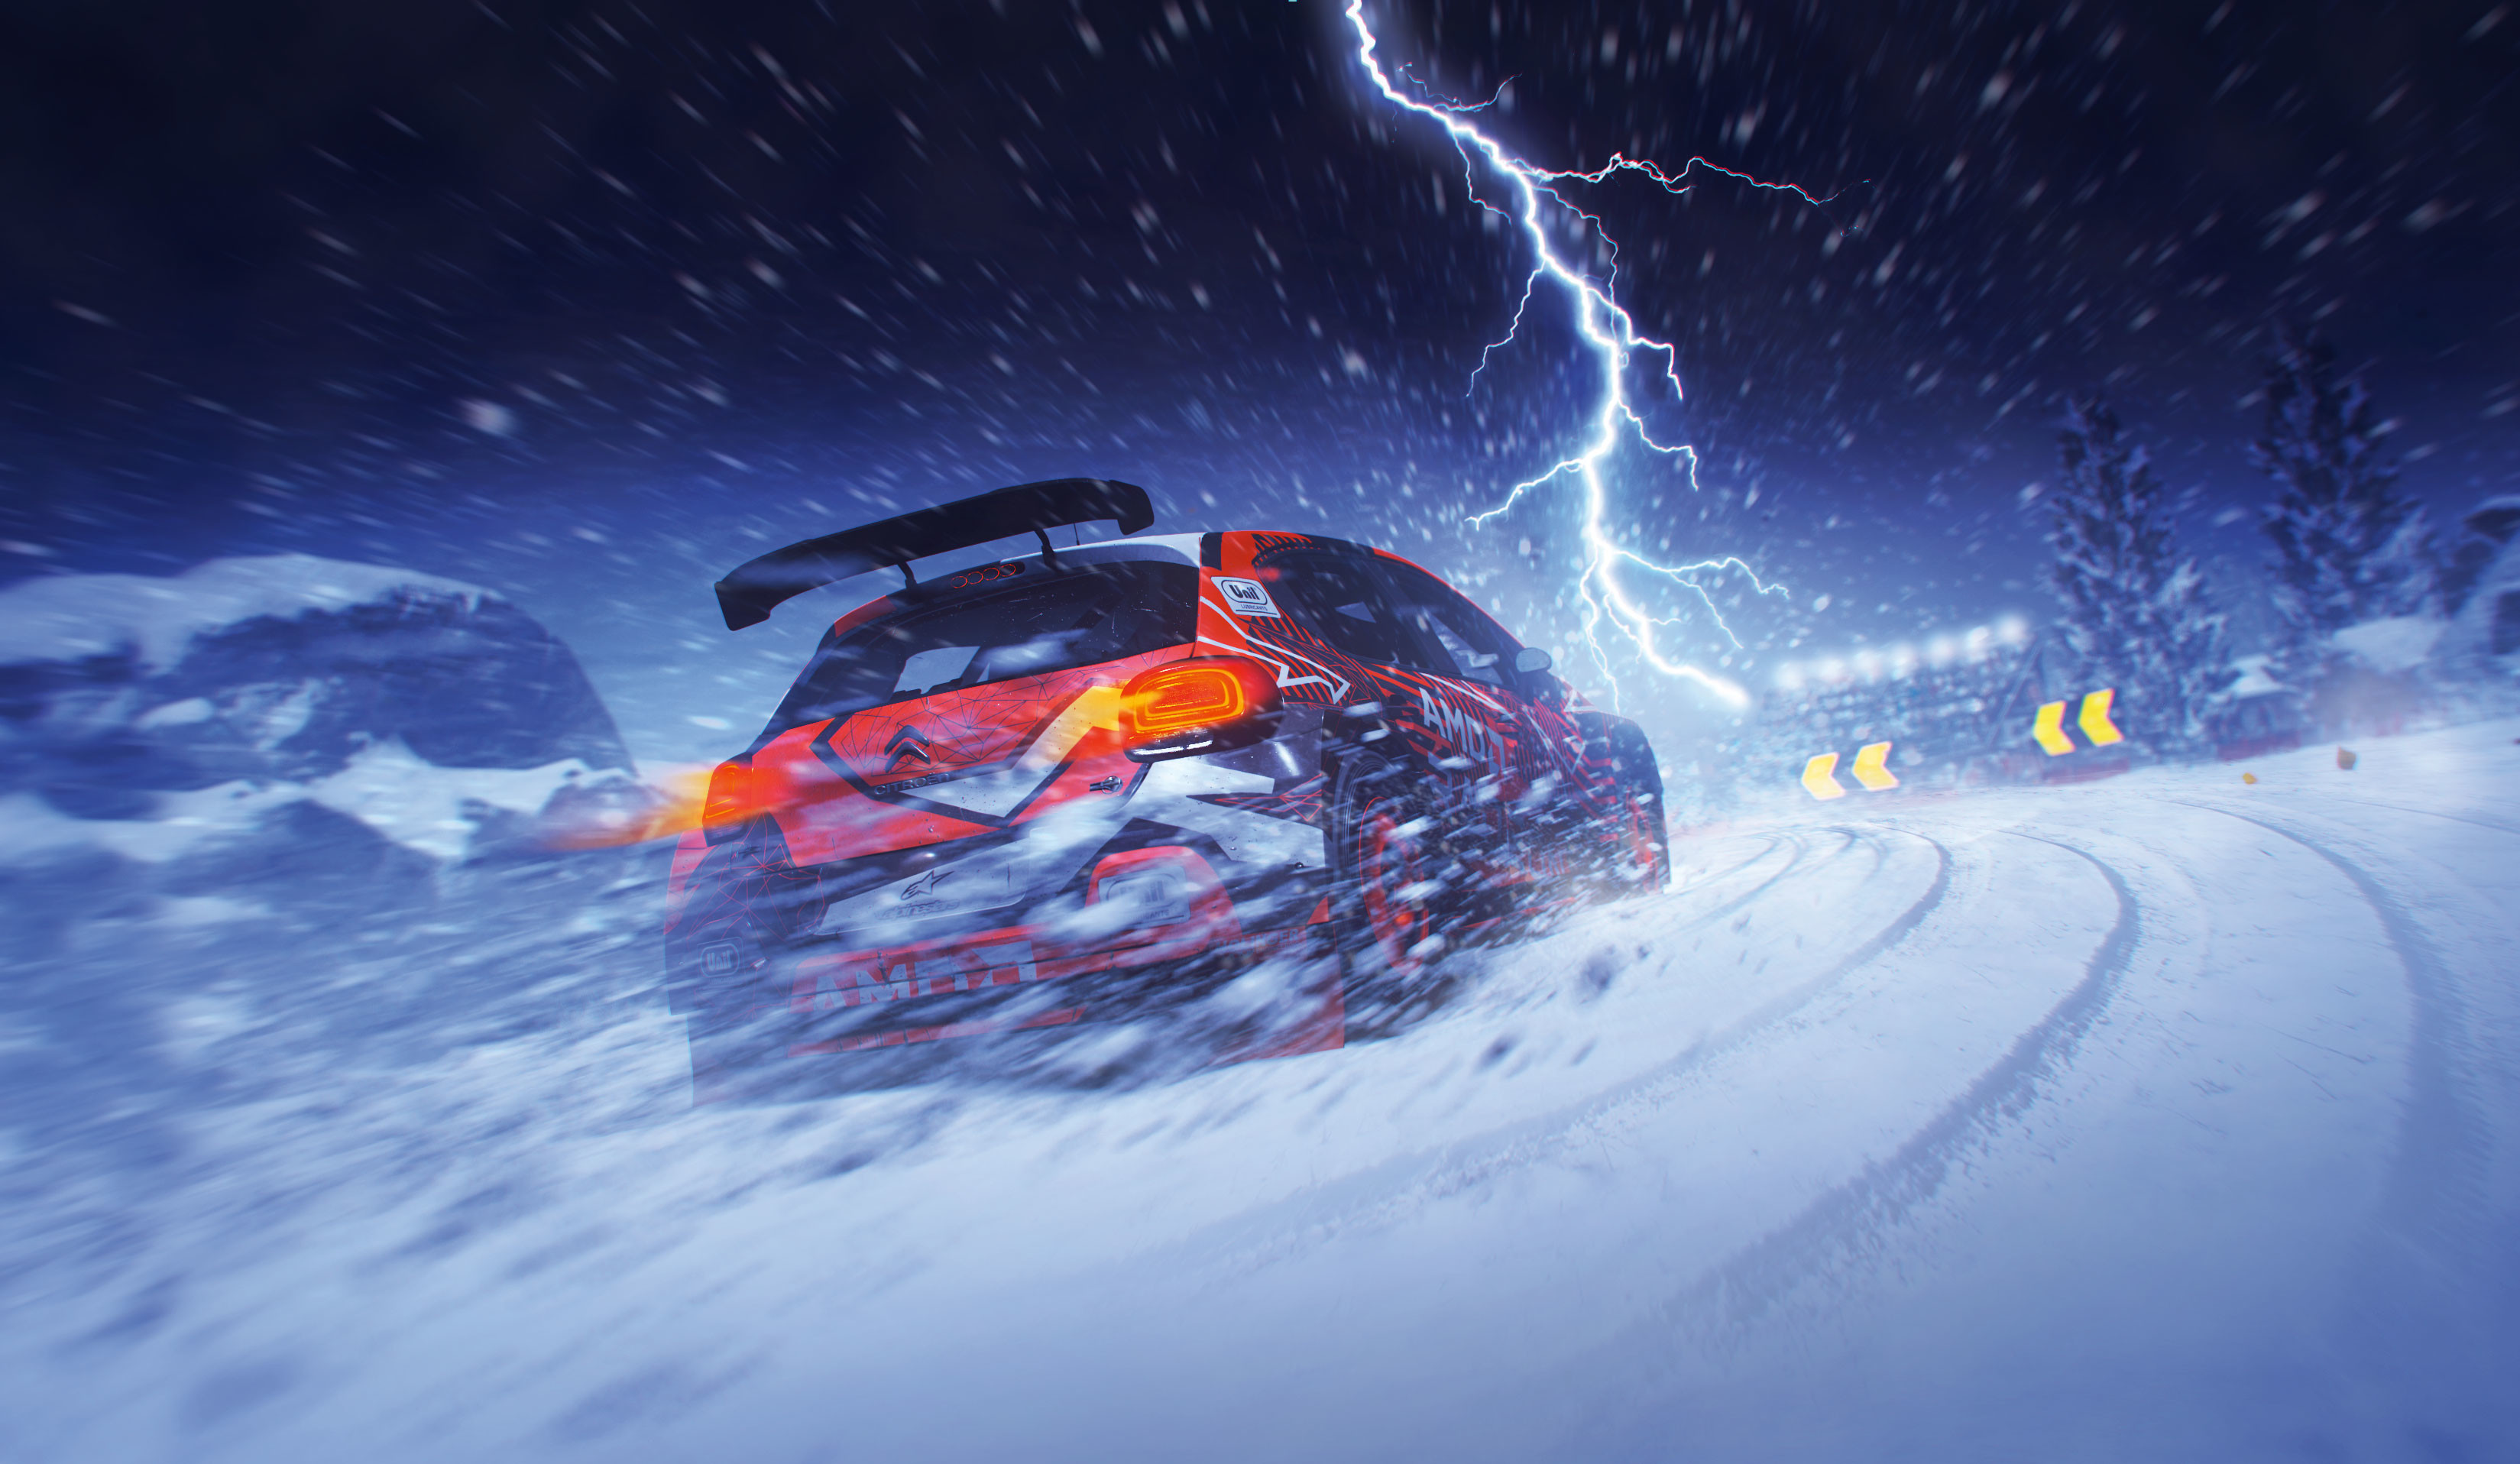 Rally car driving through thunderstorm